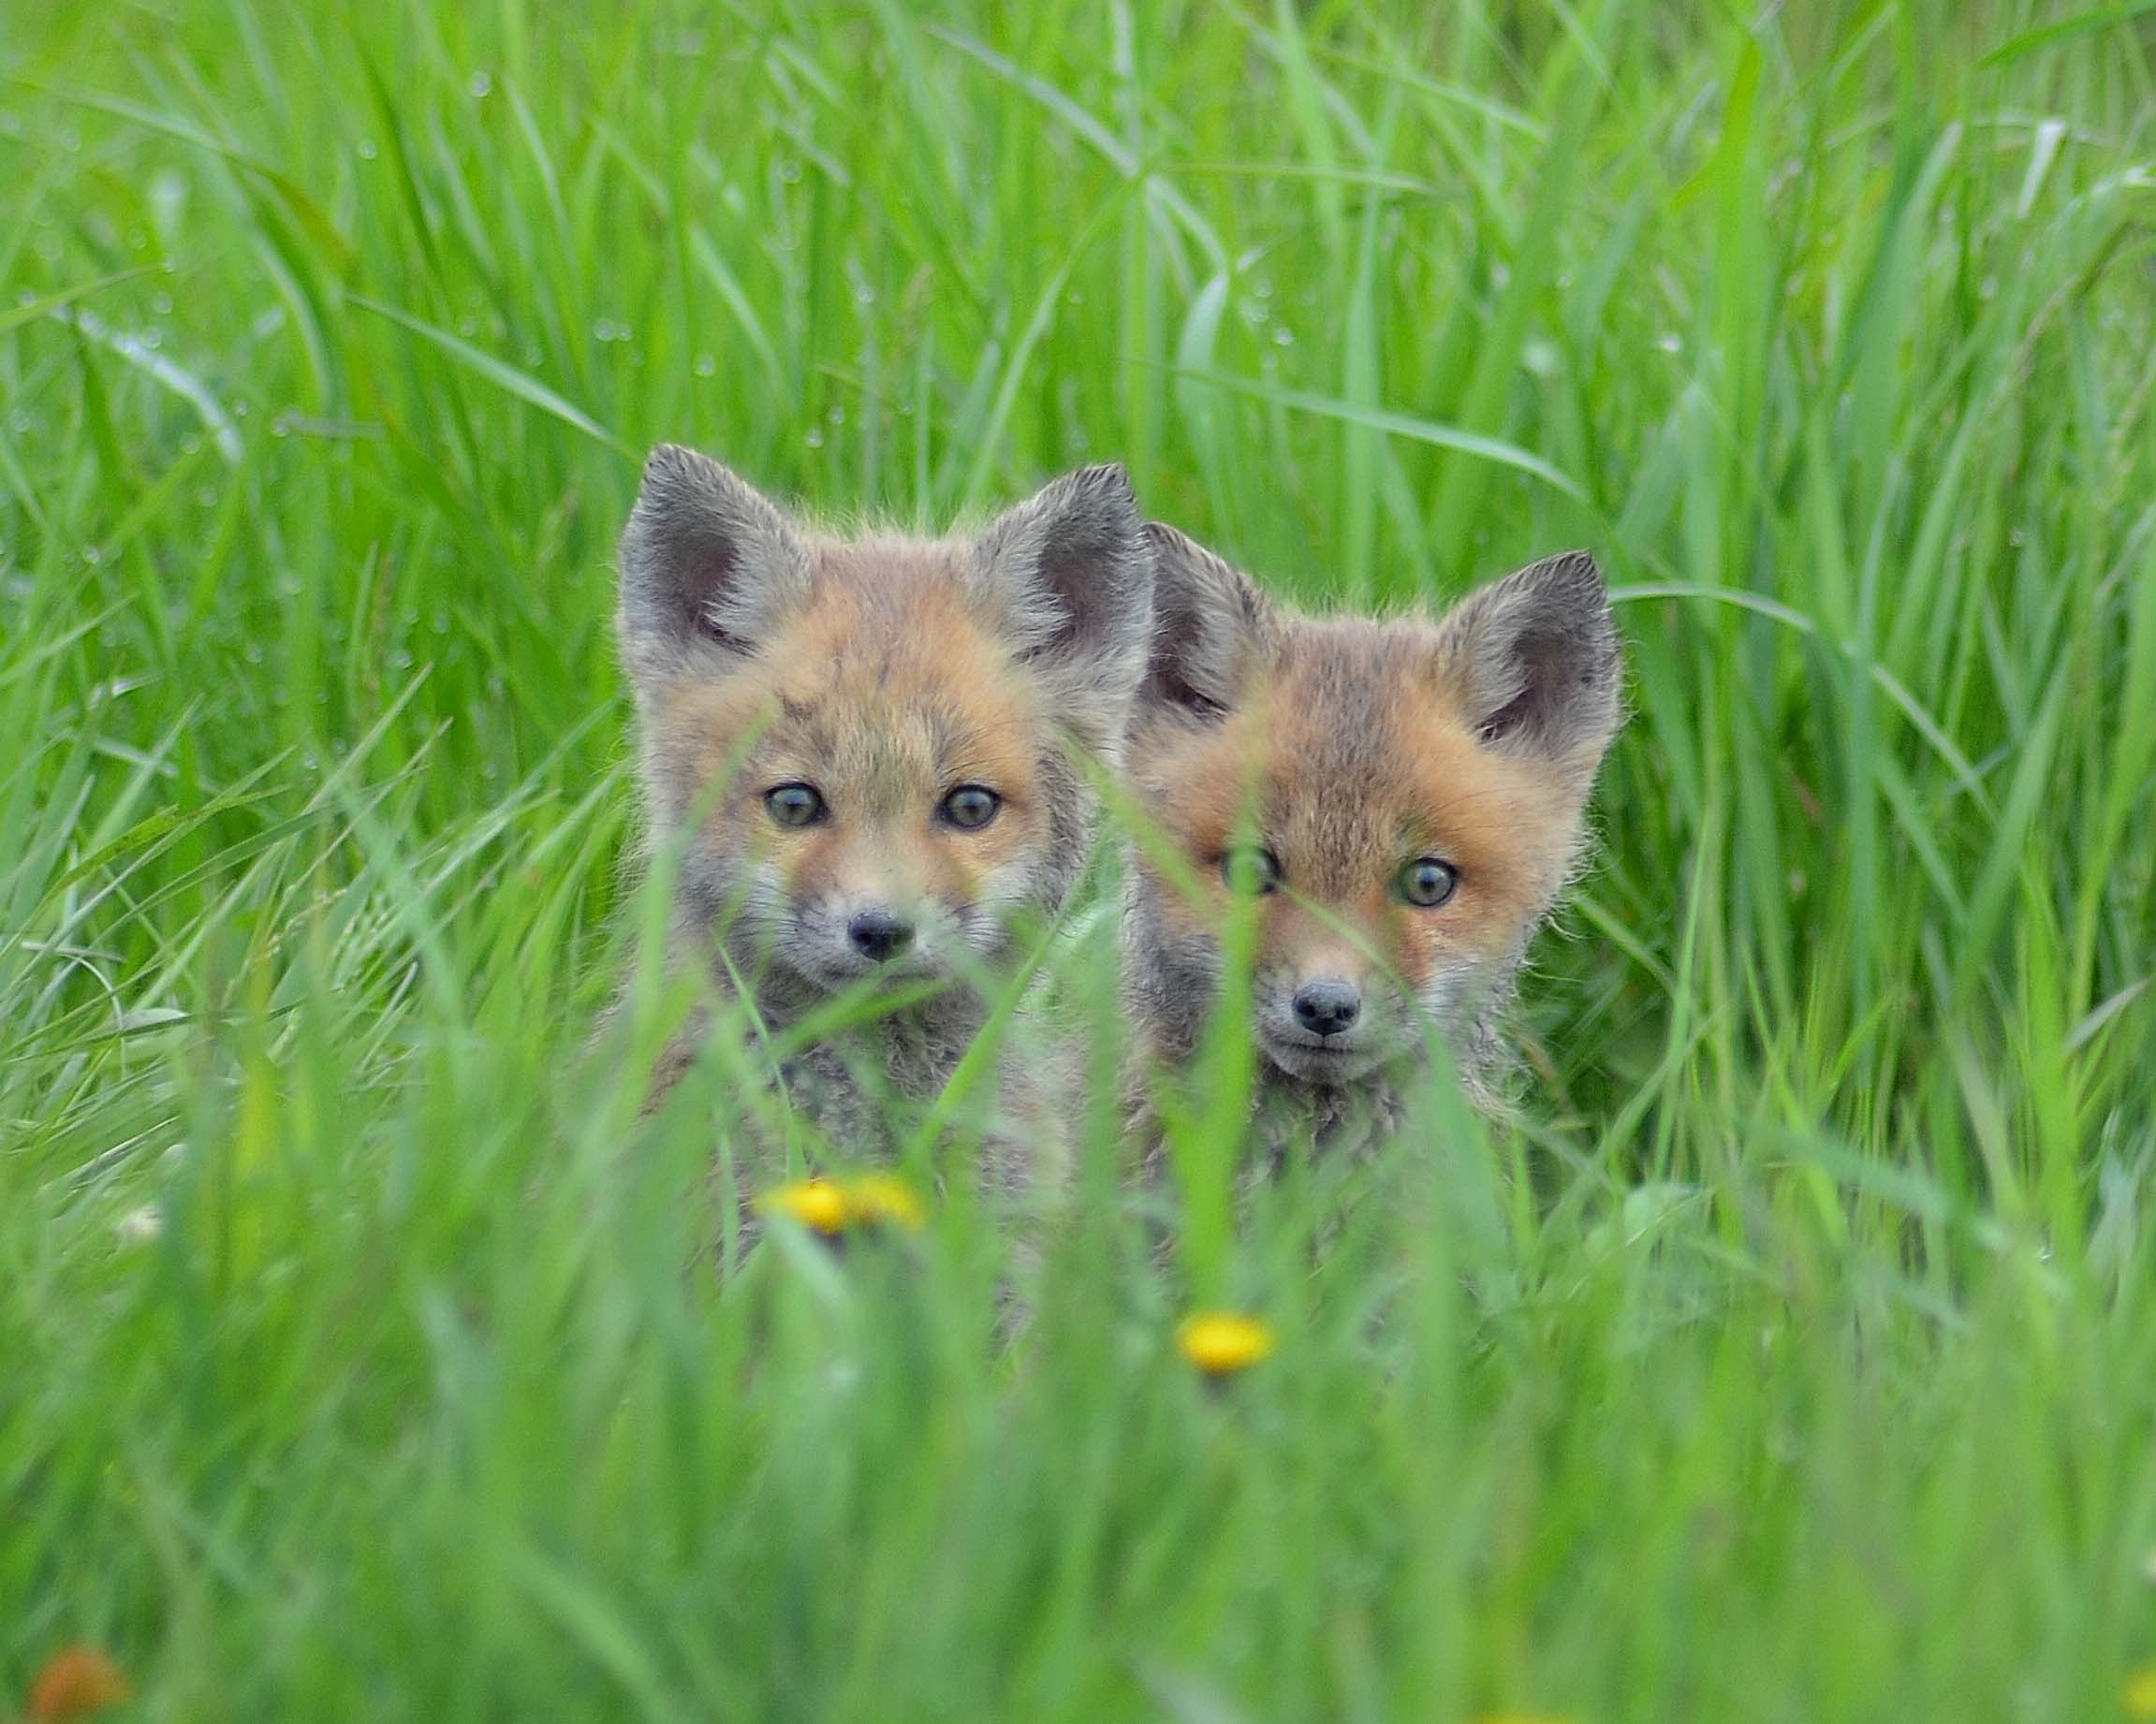 Red Fox Cubs - Photographer unknown